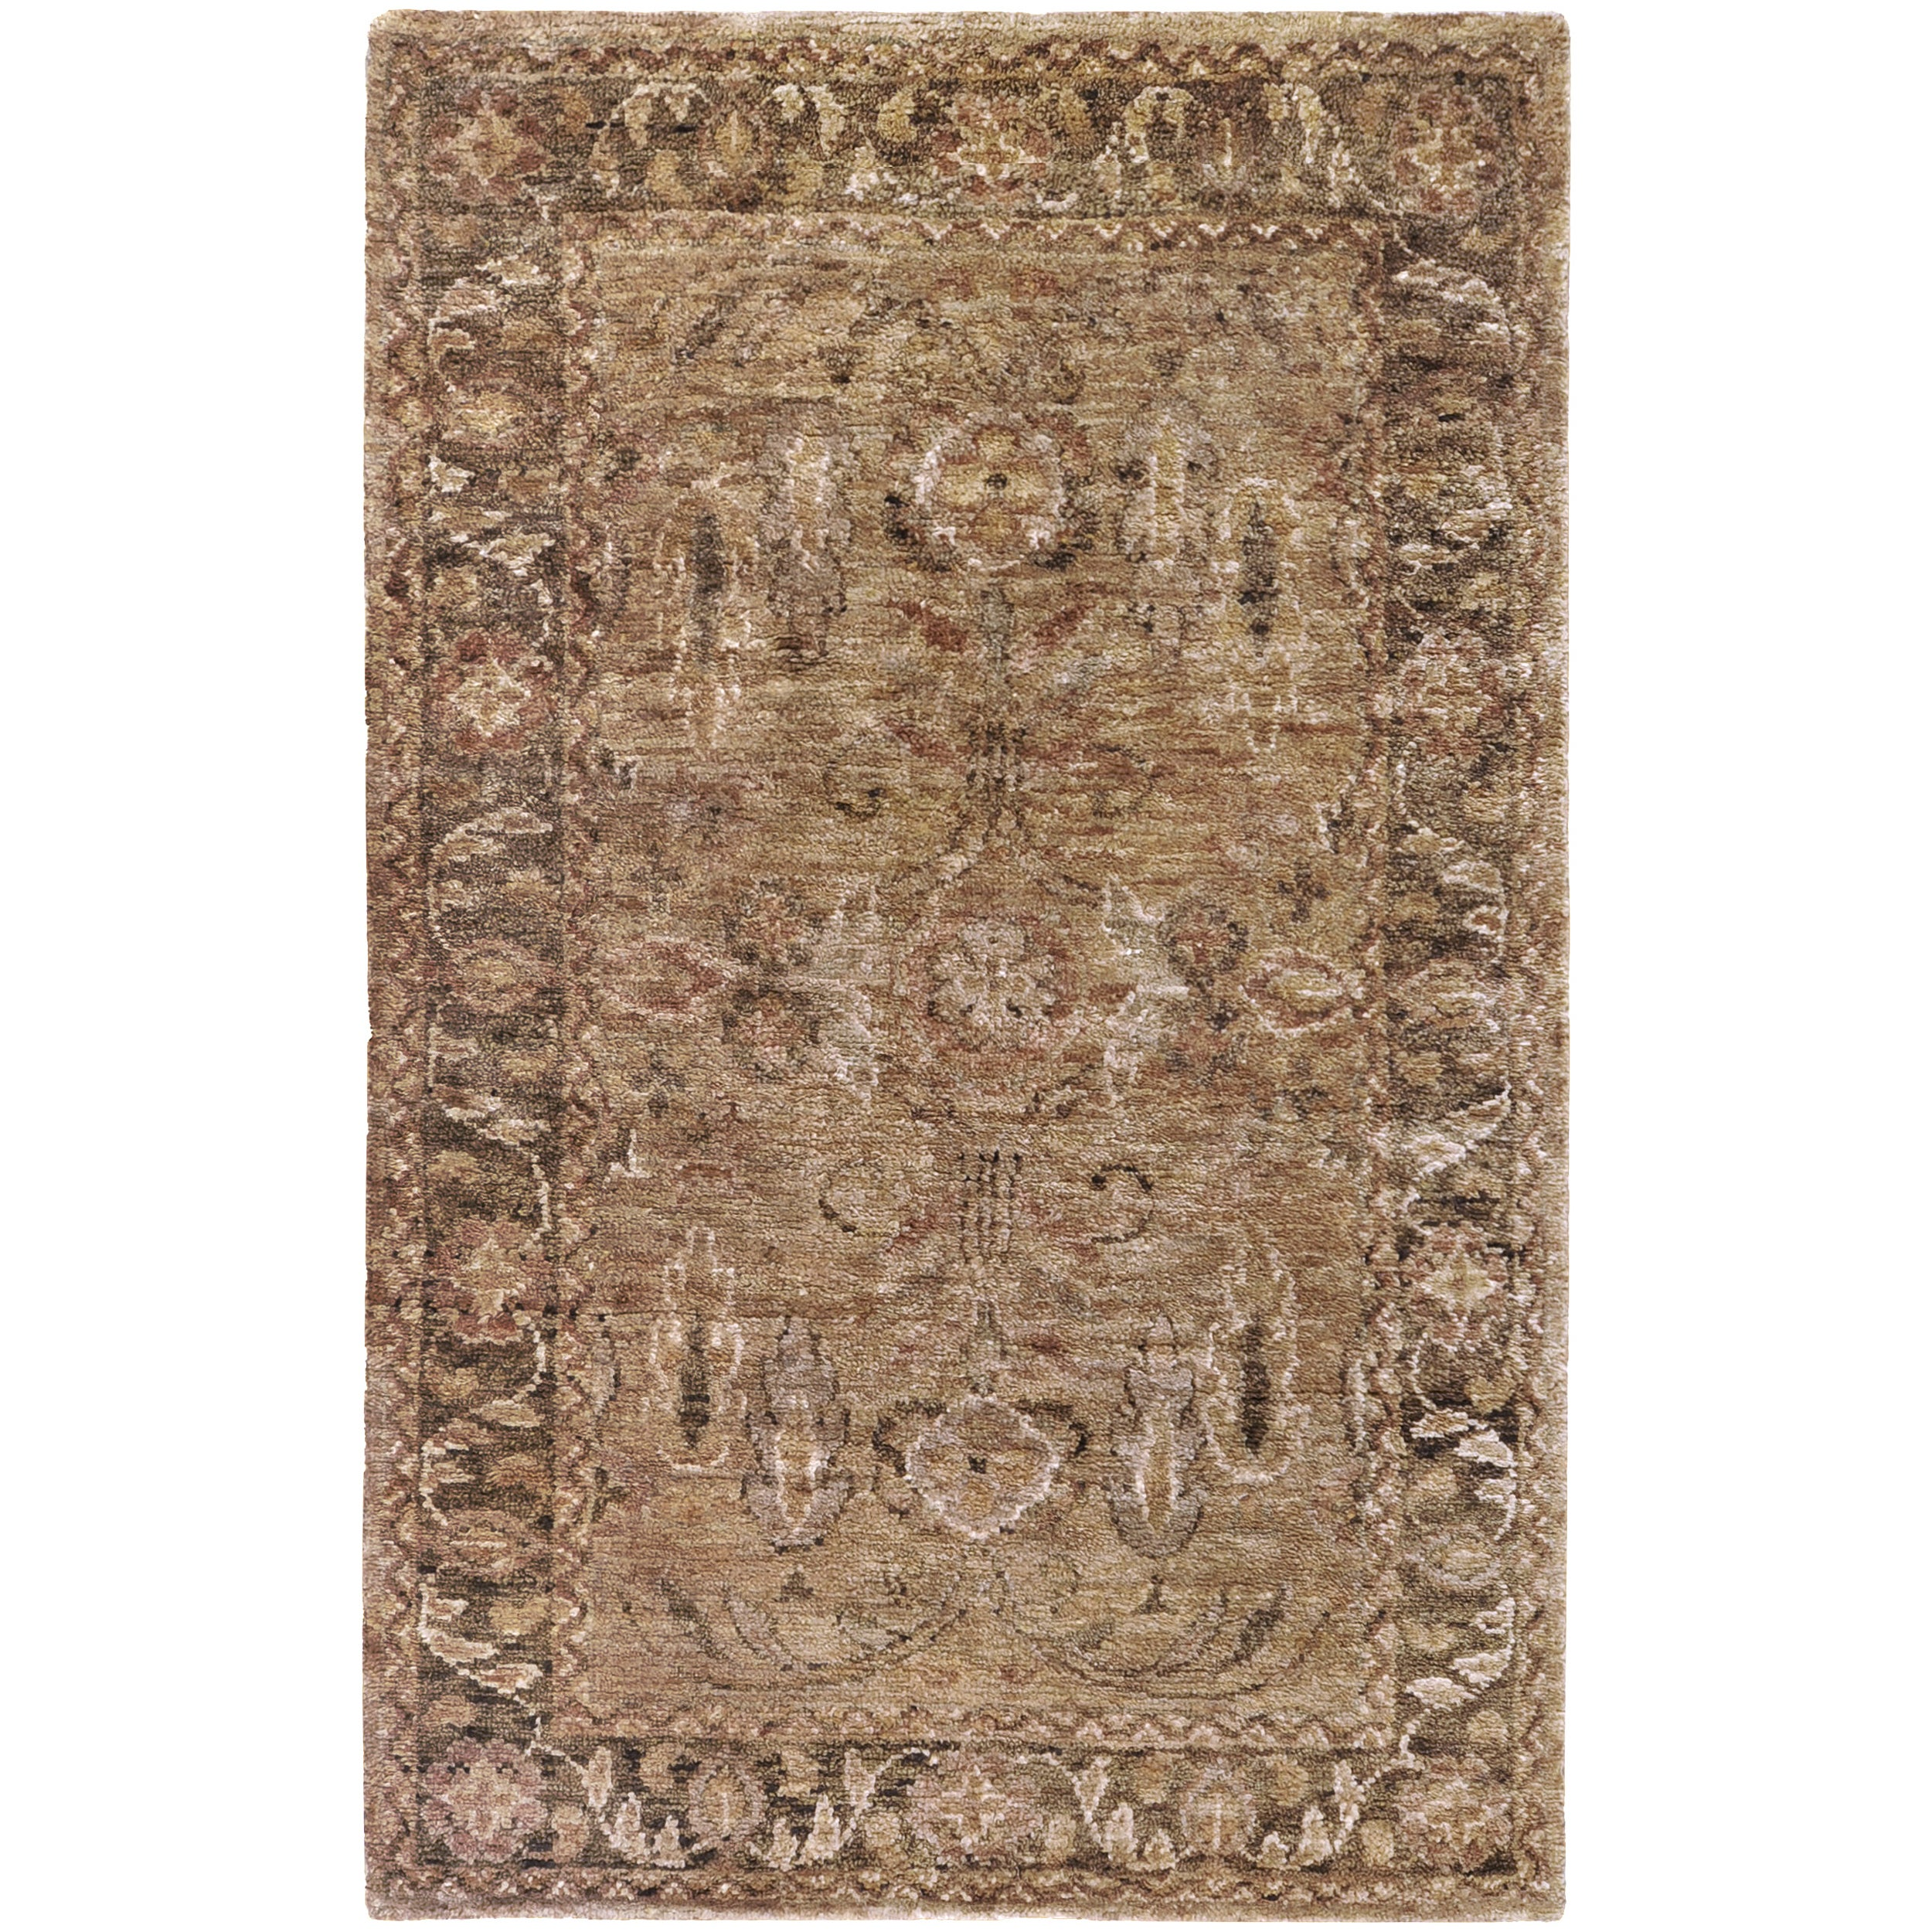 Hand-woven Brown Quizer Traditional Border Hemp Rug (3'3 x 5'3)